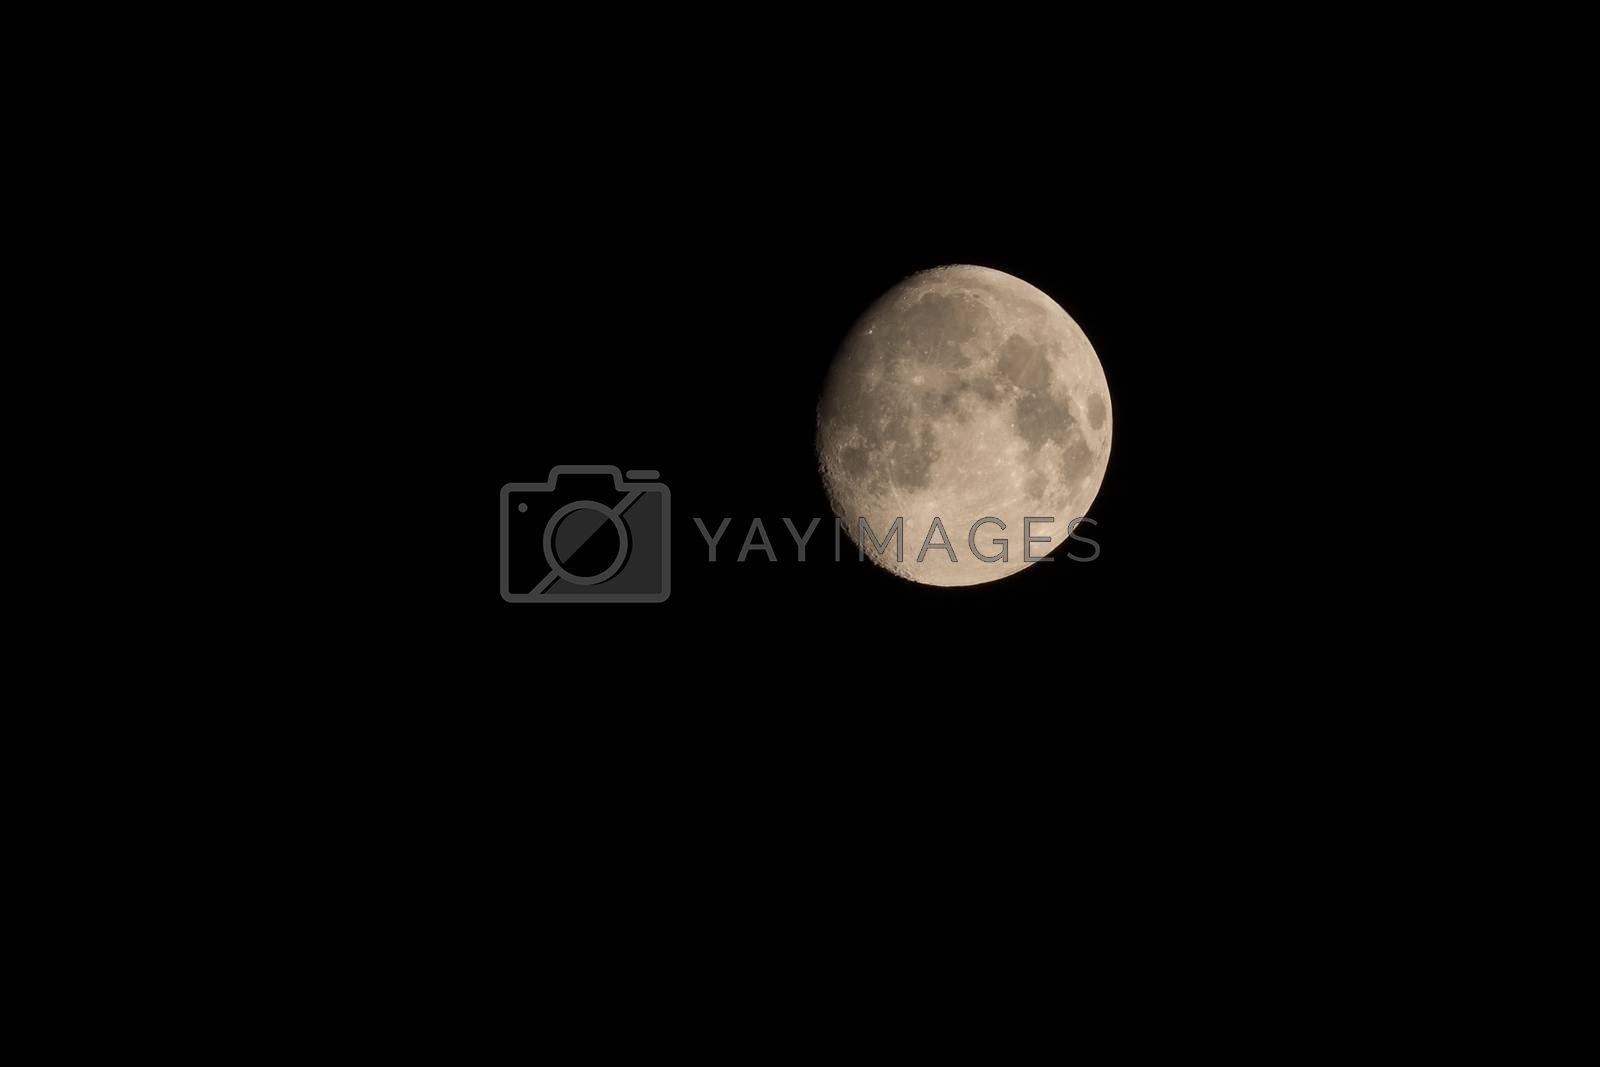 The photo shows the moon